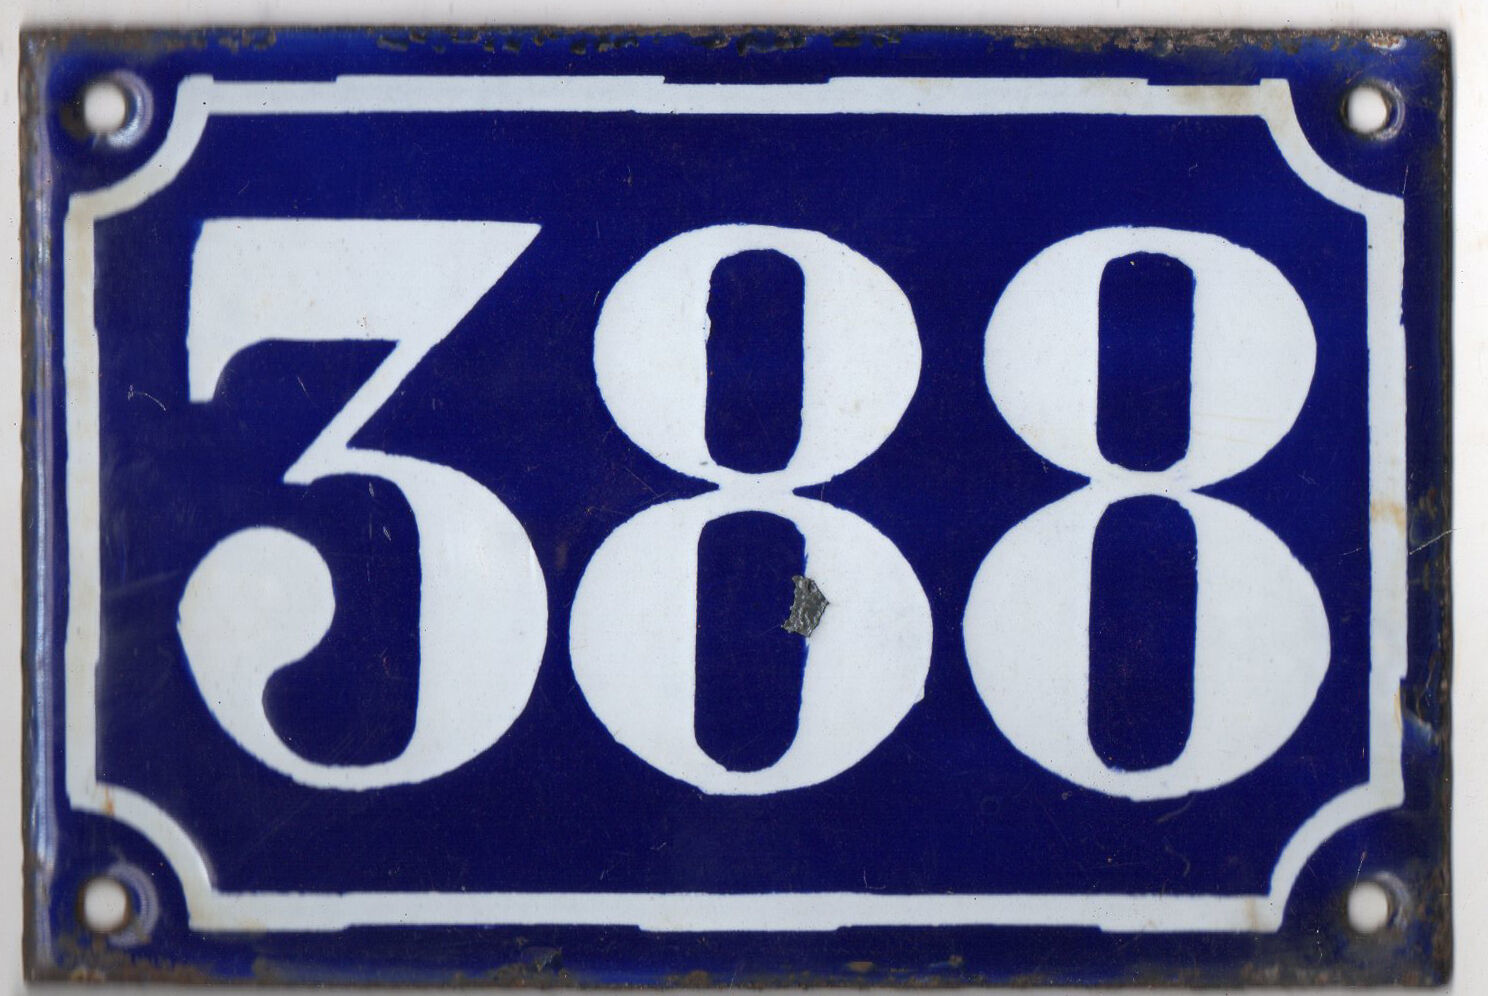 Old blue French house number 388 door gate plate plaque enamel metal sign c1900